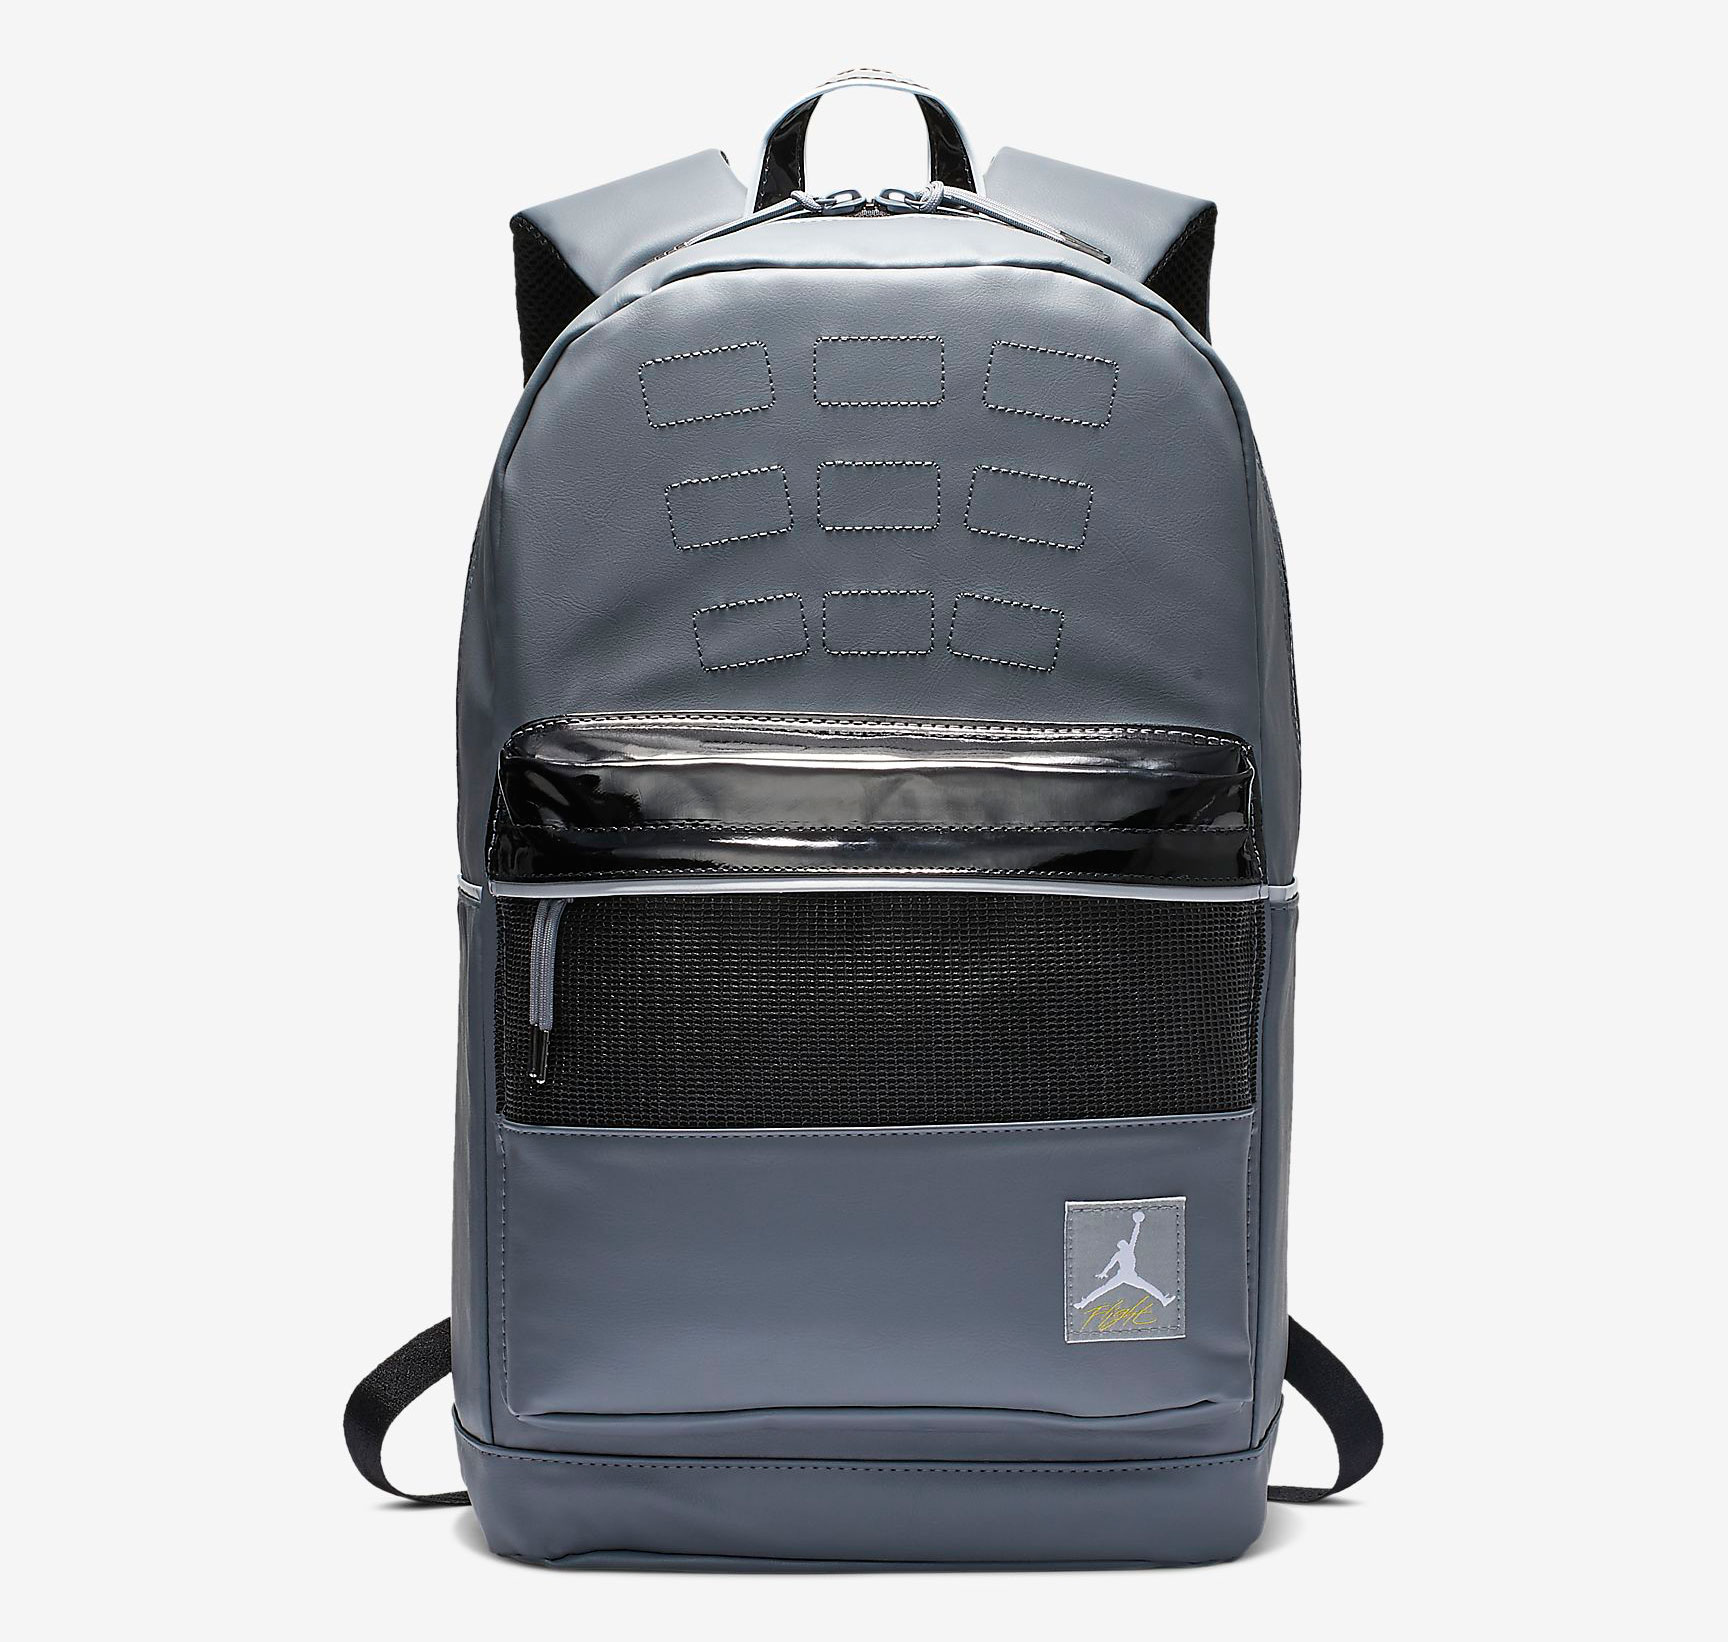 air-jordan-4-cool-grey-backpack-1